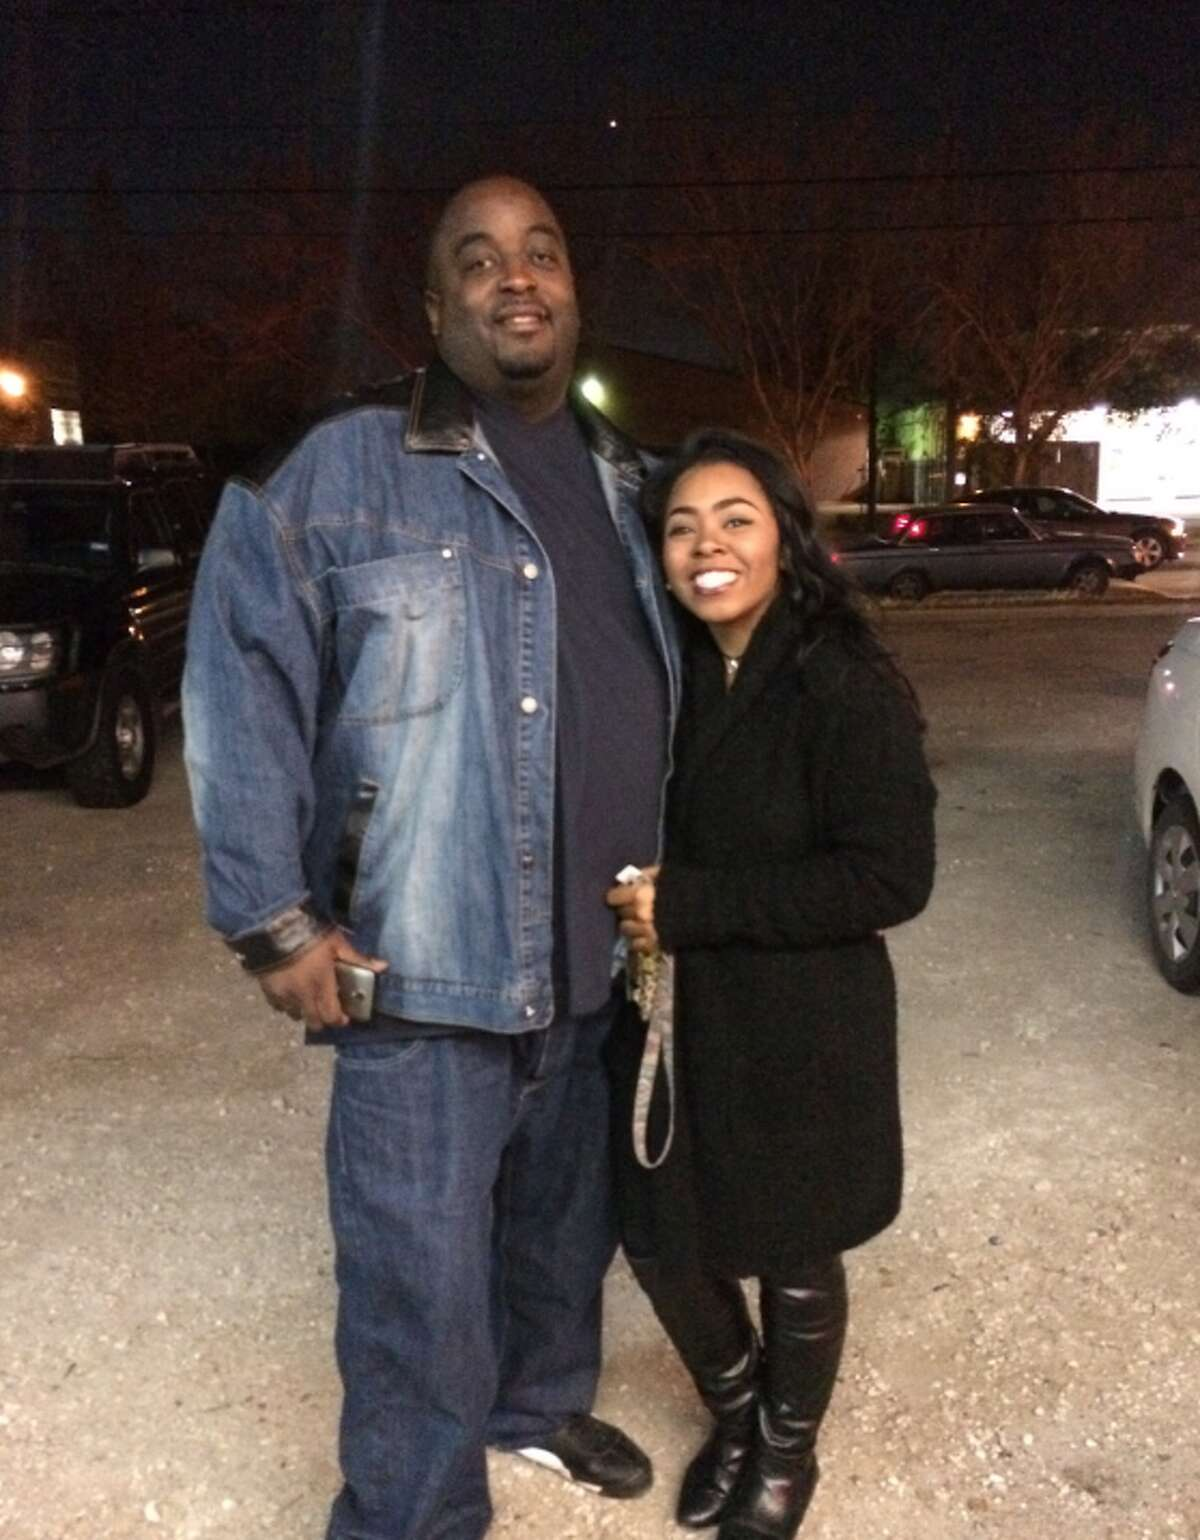 Jon Whitfield, a Houston rapper who frequently wrote for other artists, was killed Monday night at a recording studio in Houston. His daughter, Diamond Whitfield (pictured), described him as a loving and supportive father. She doesn't know why someone would fatally shoot him multiple times during an apparent robbery.